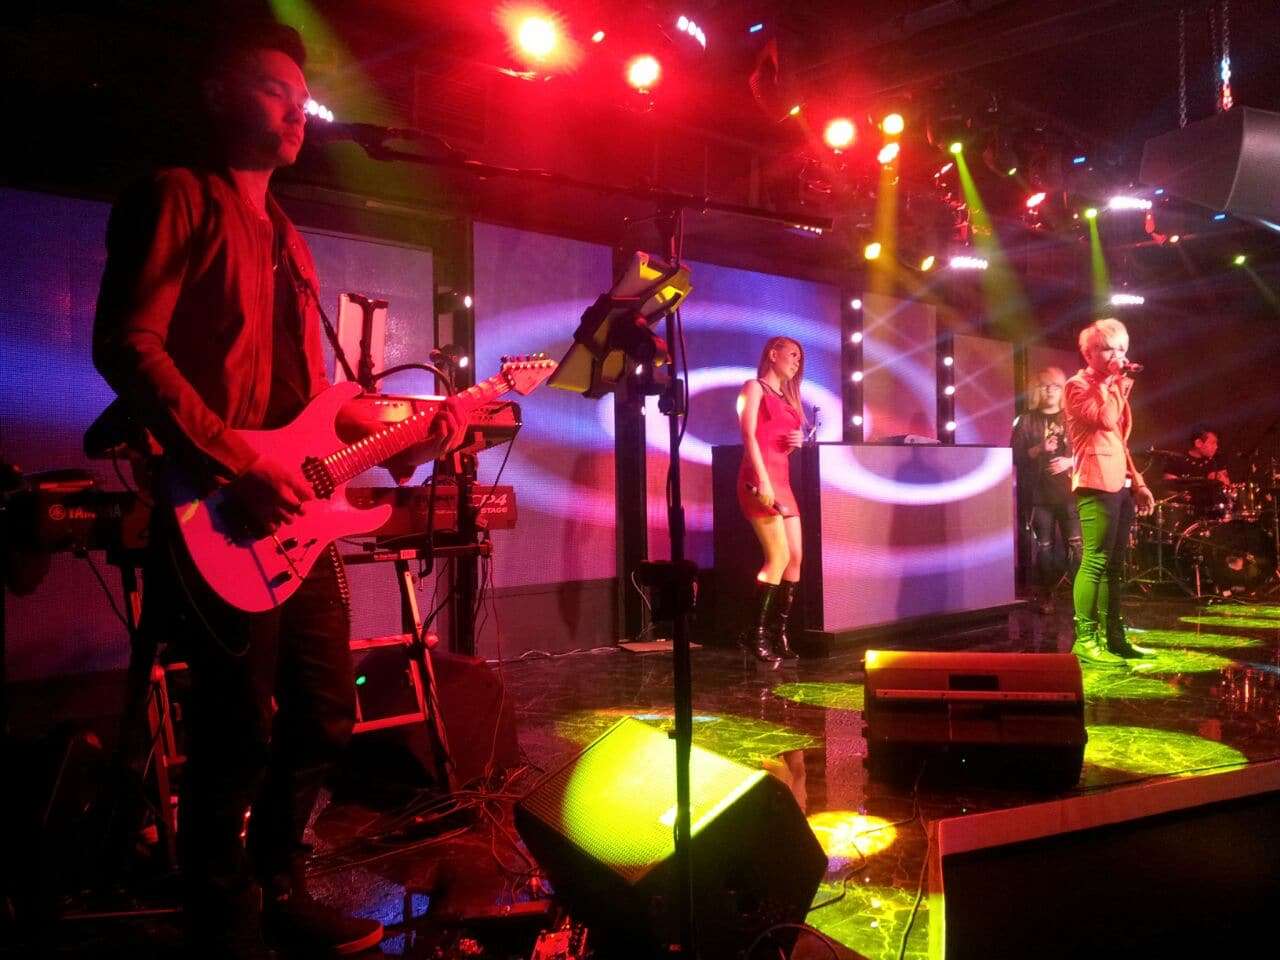 live band accessories and audio visual solution -Hertz2-LED walls and AV specialists